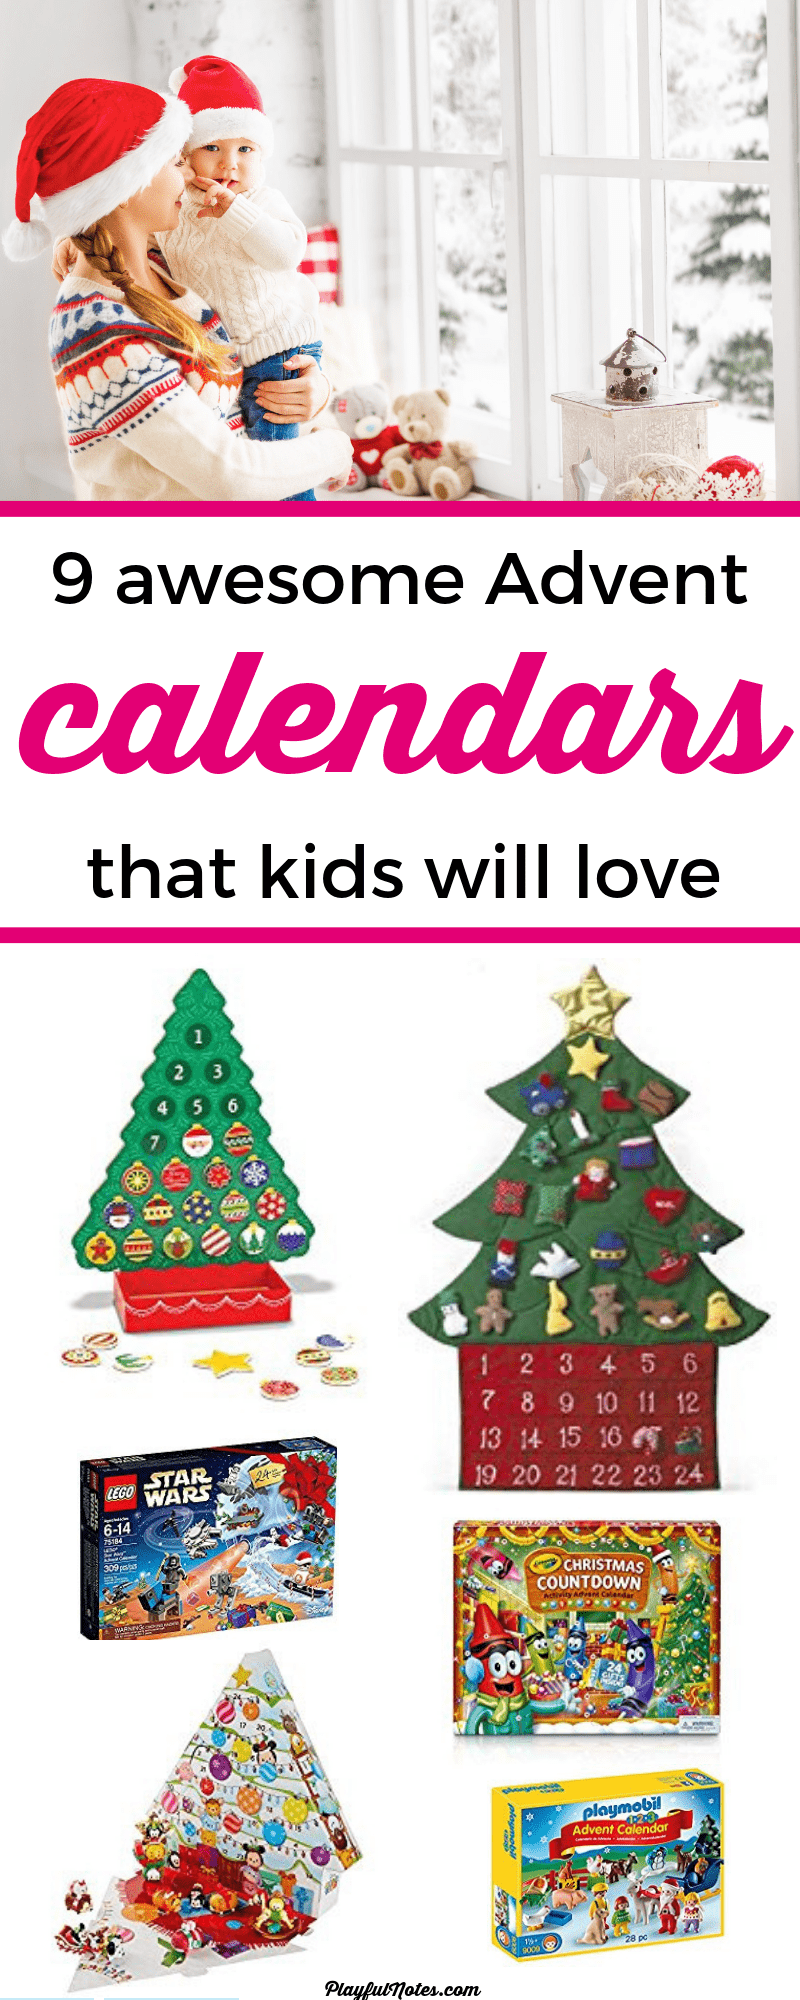 Awesome Advent calendars for young kids: Are you looking for an awesome kids Advent calendar? Here is a list of great ideas that can bring a lot of joy to young kids! --- Advent calendar ideas | Printable Christmas activity ideas #ChristmasForKids